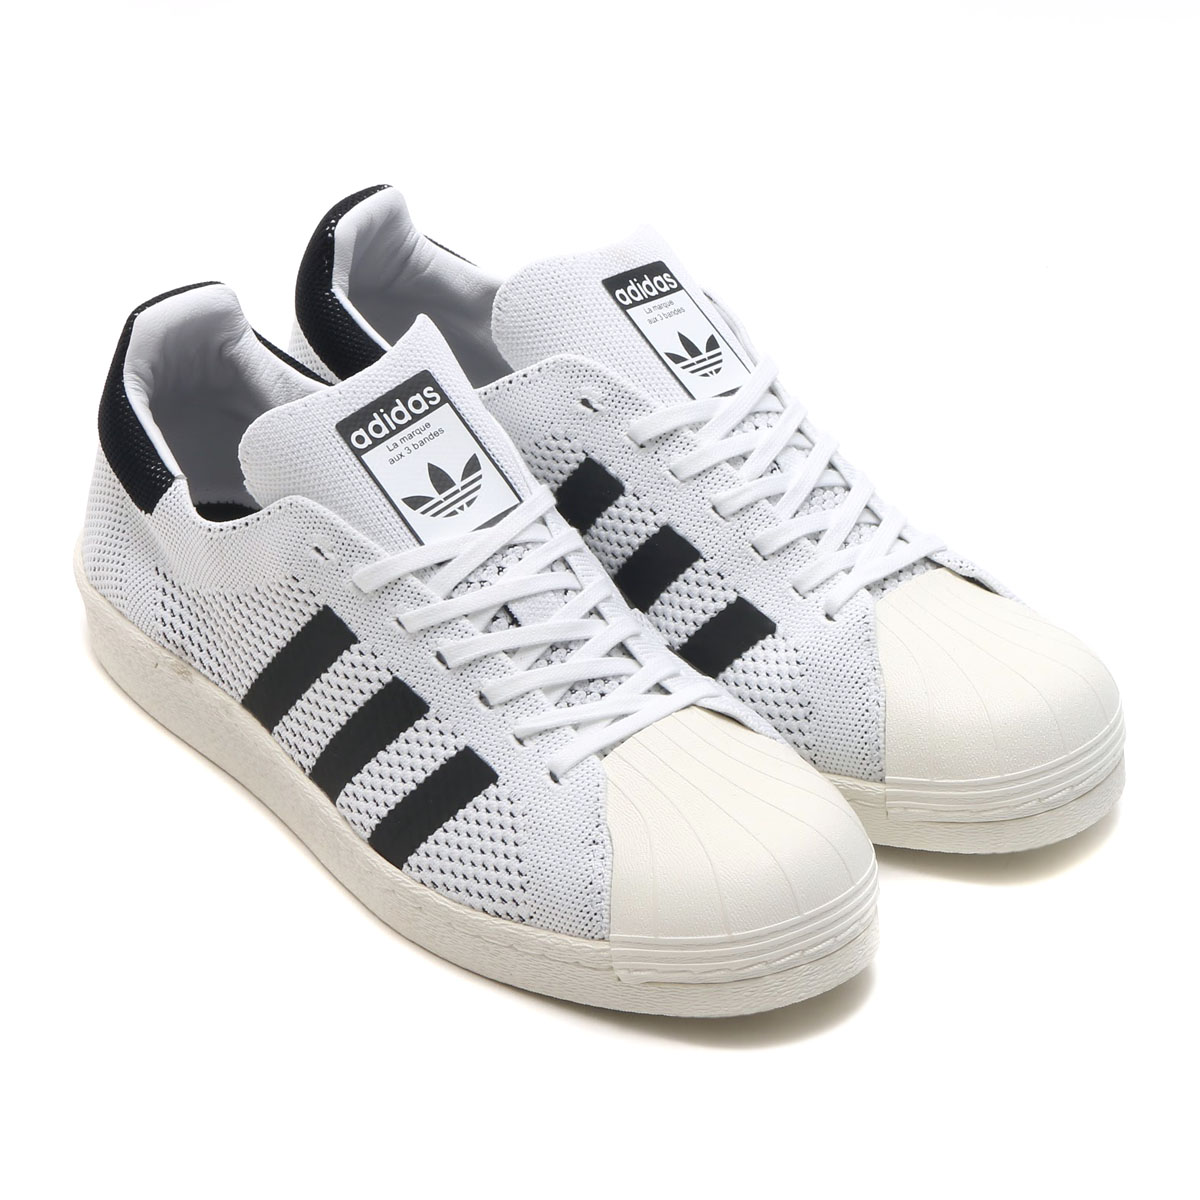 adidas Originals SUPERSTAR BOOST PK (Adidas